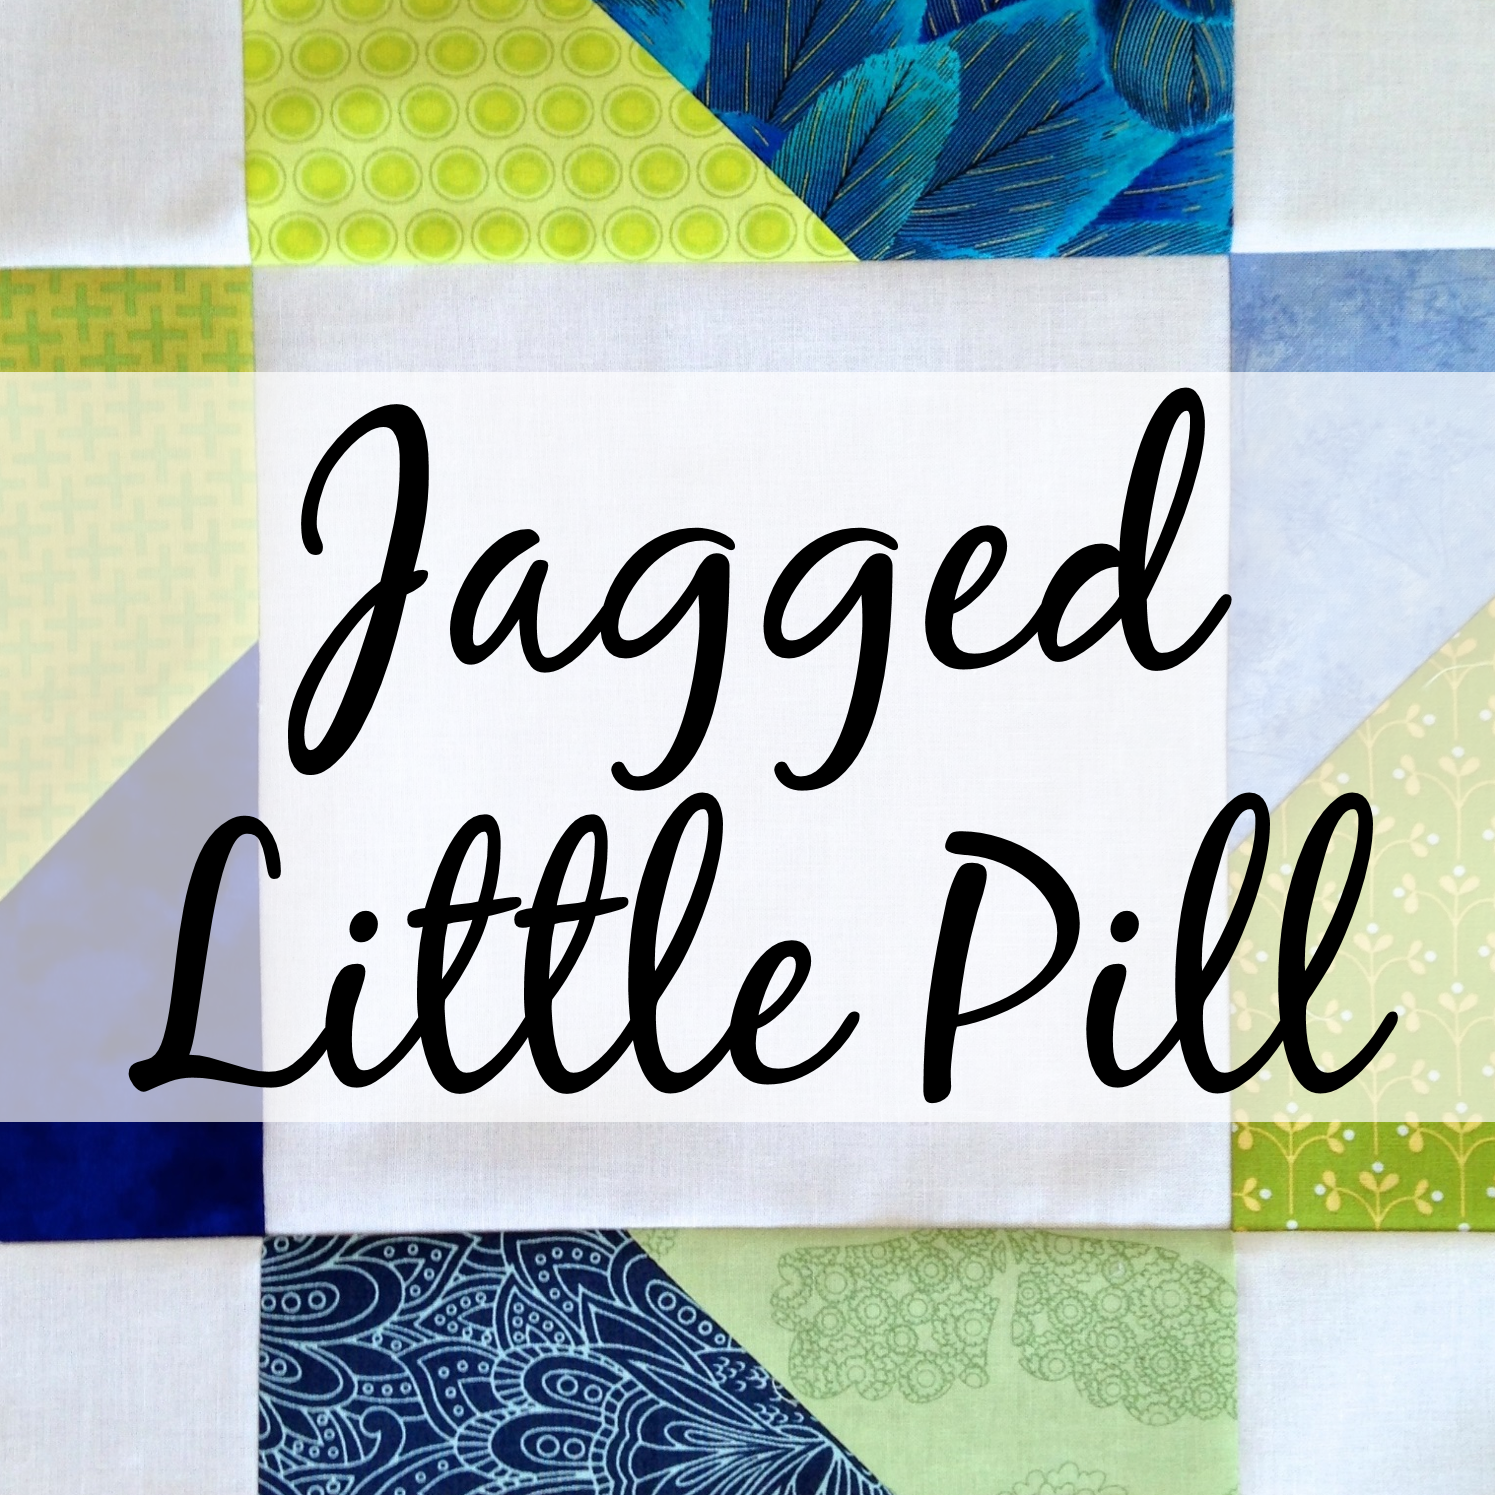 Jagged little pill quilt block tutorial